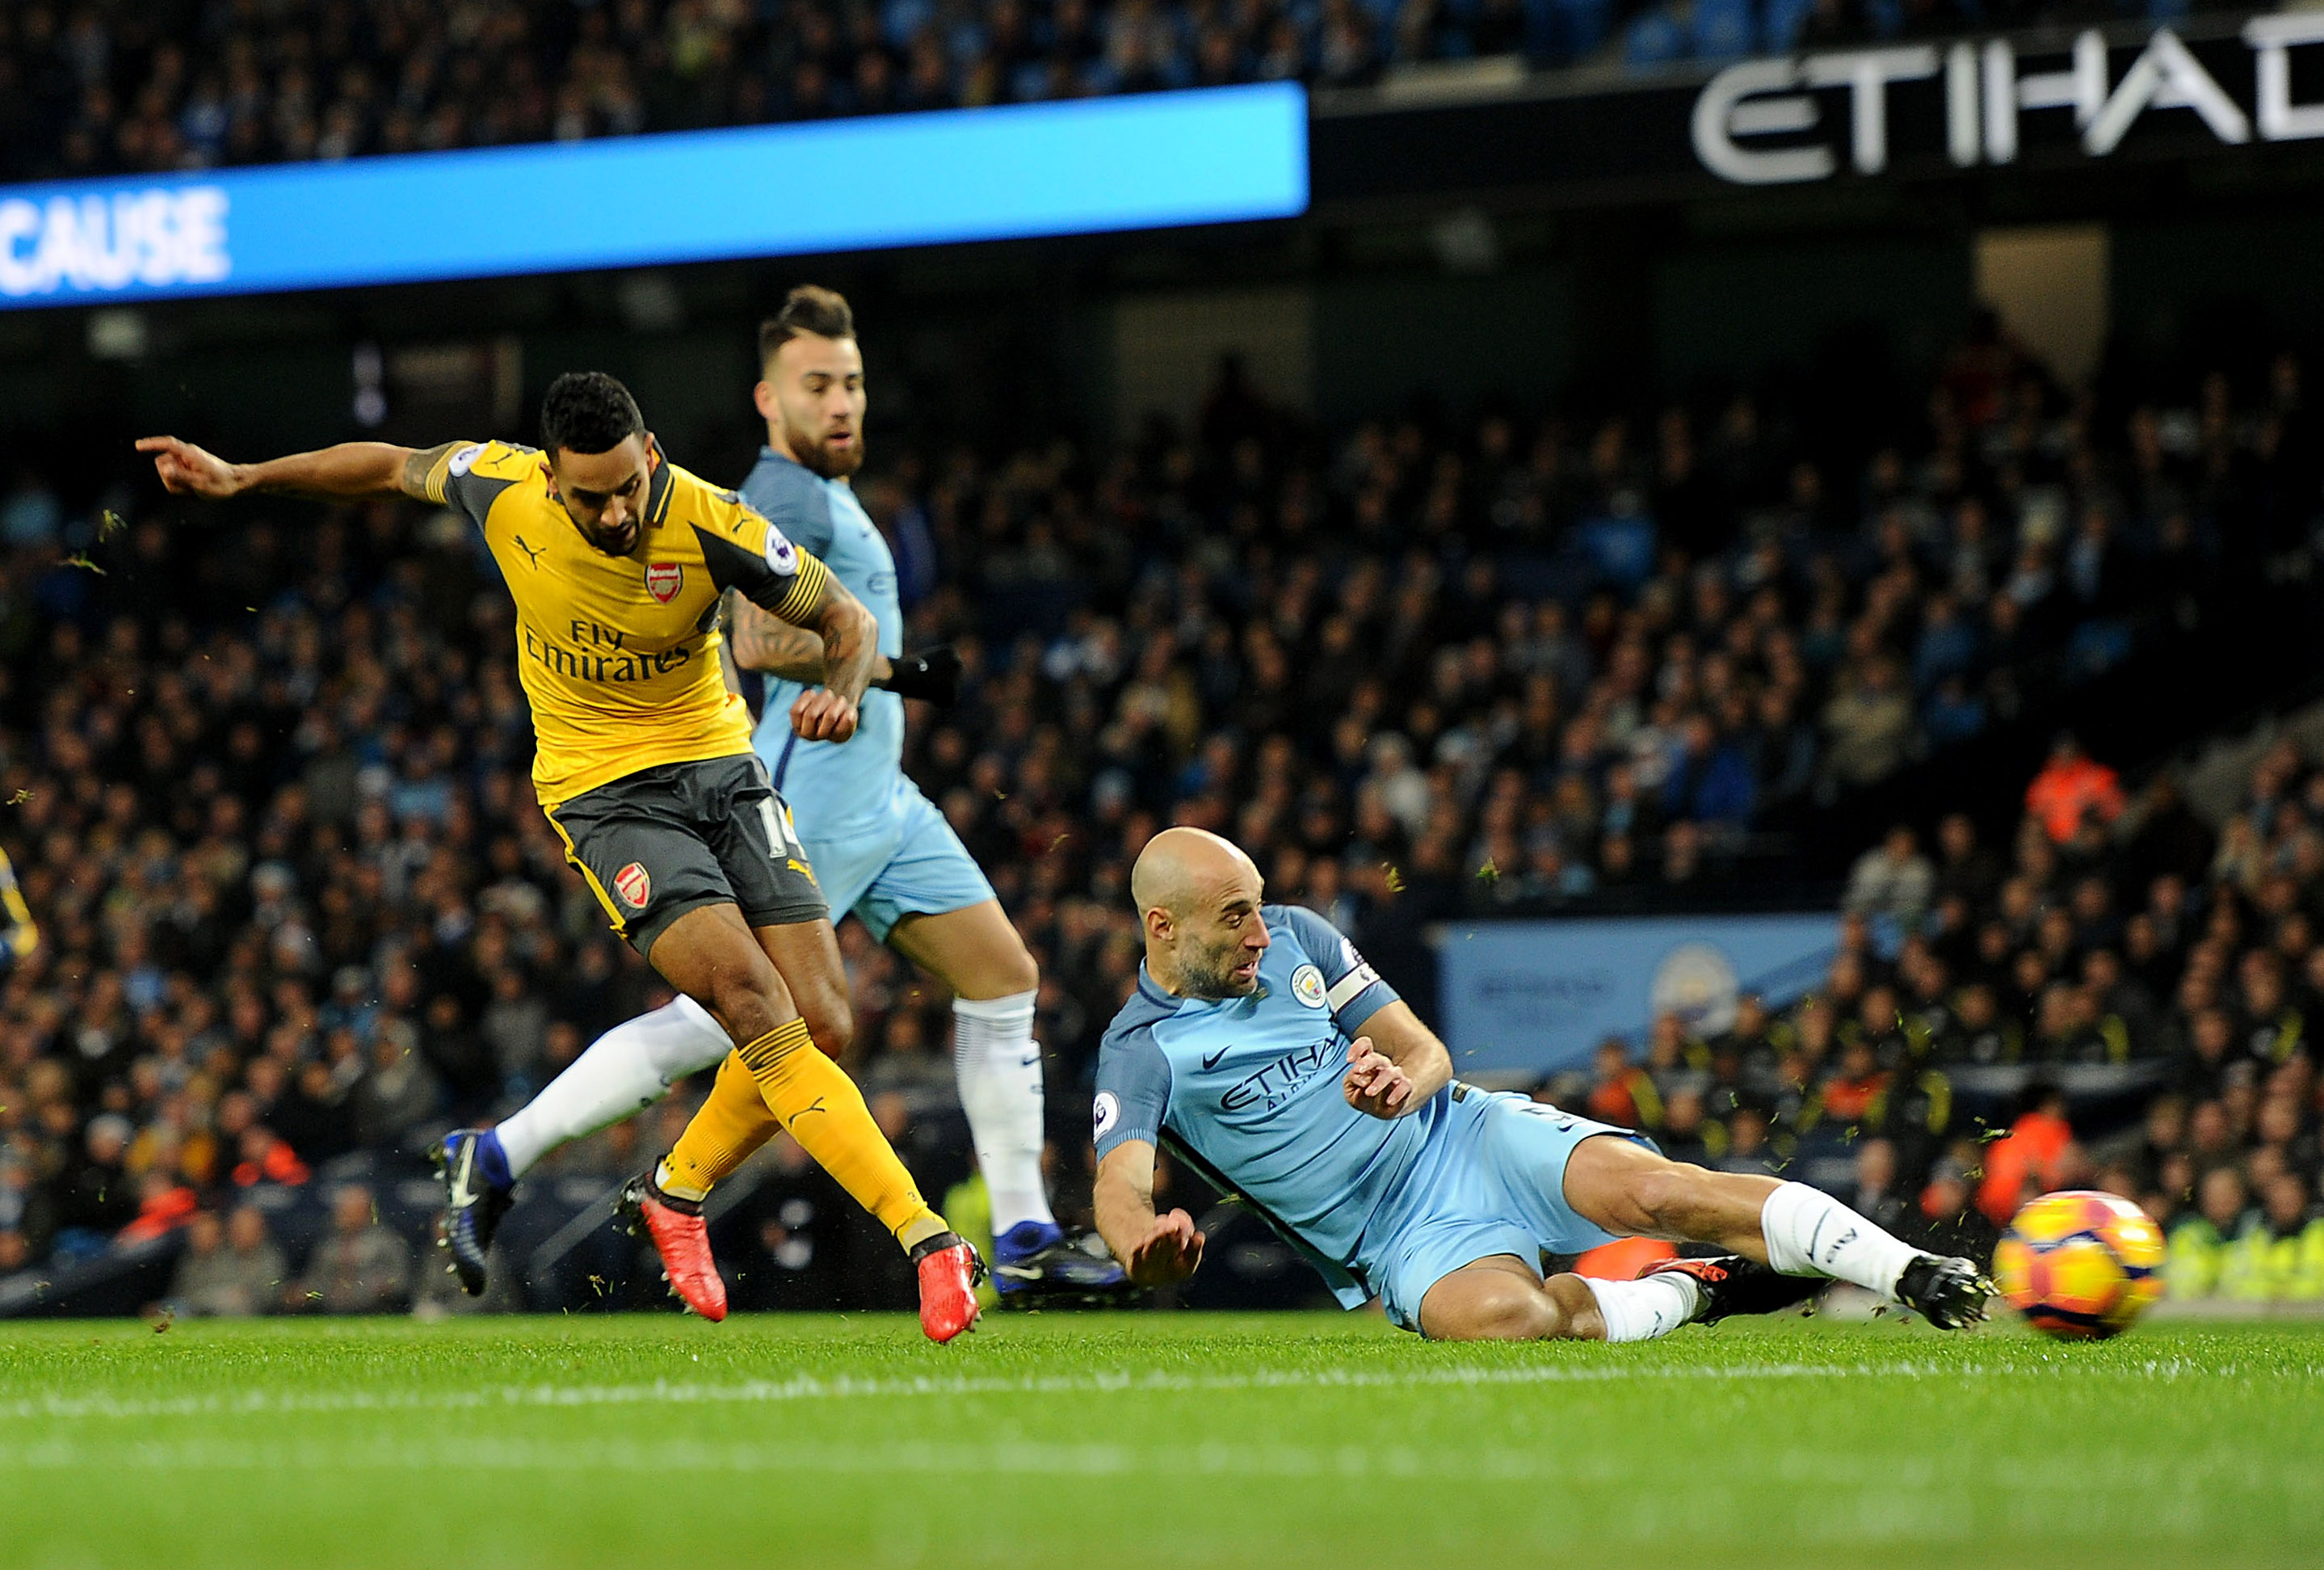 City supporters were fearing the worst when Arsenal went ahead after just four minutes.